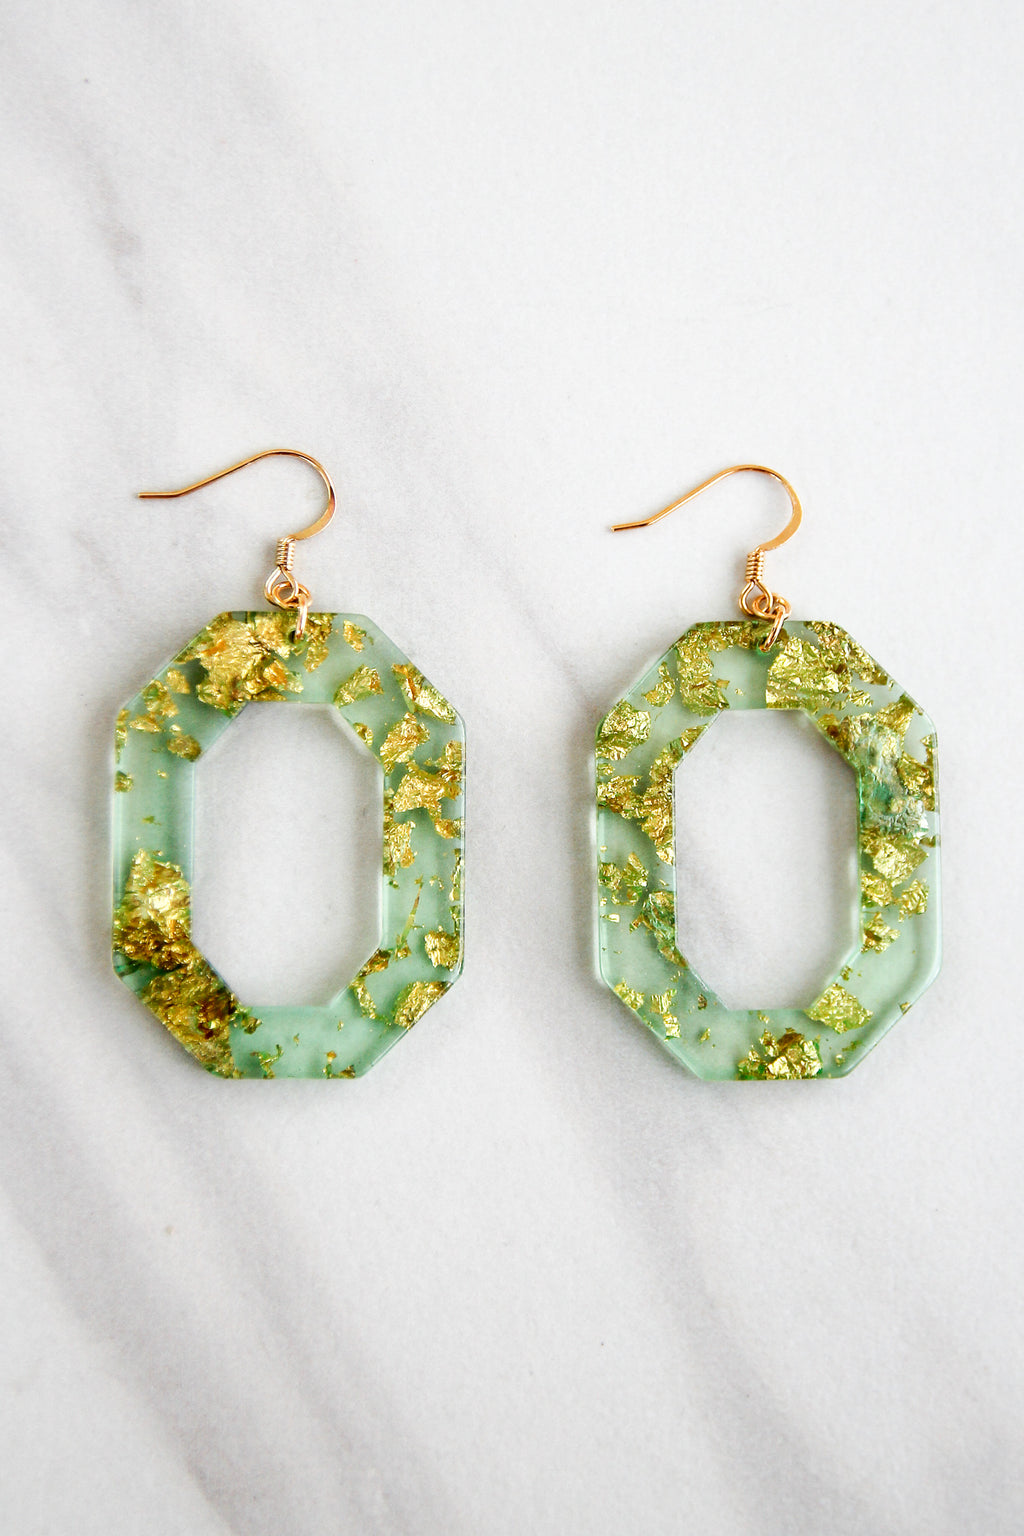 In The Future Acrylic Earrings - Green